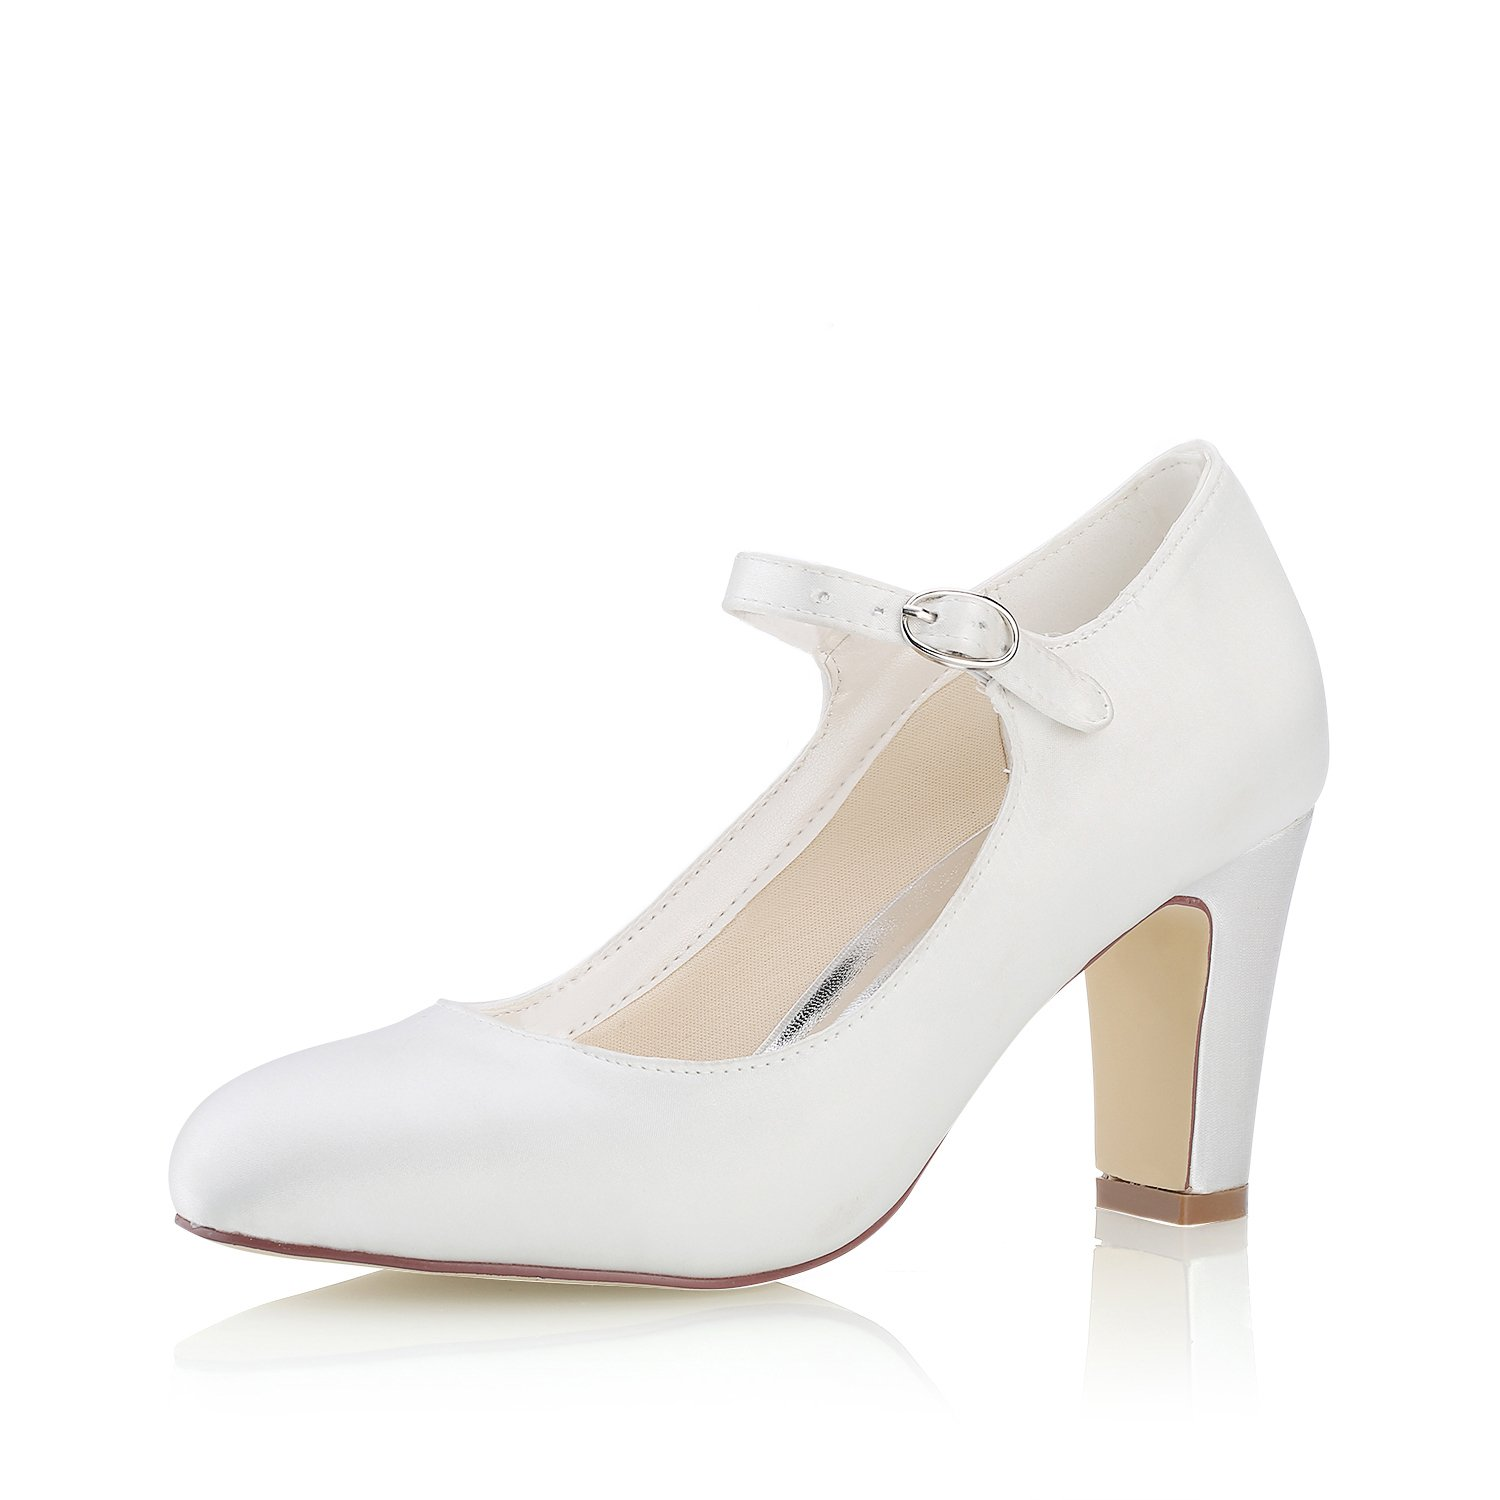 30884cdecdd Mrs White Women's Bridal Shoes 3421-5 Closed Toe Chunky Heel Satin Pumps  Wedding Shoes